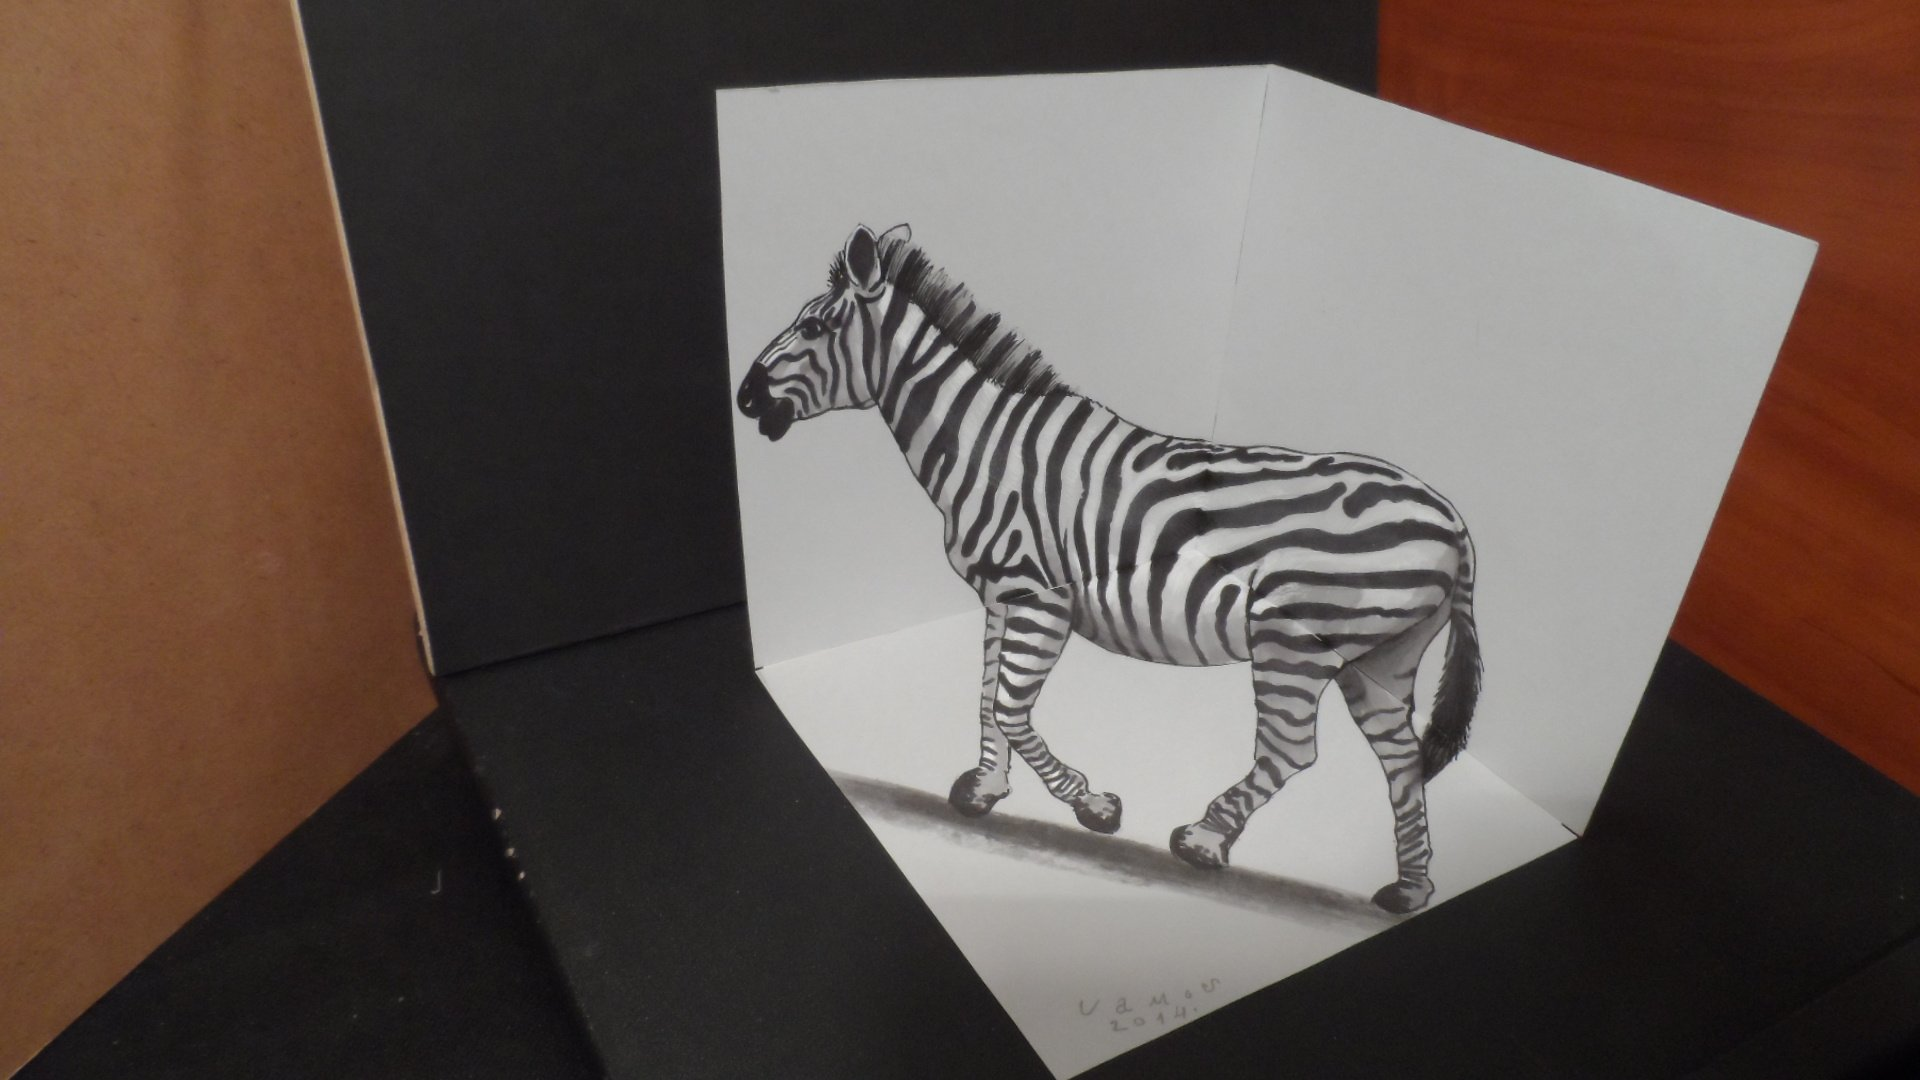 Drawn 3d art paper for kid Free download Drawing Paper Cool